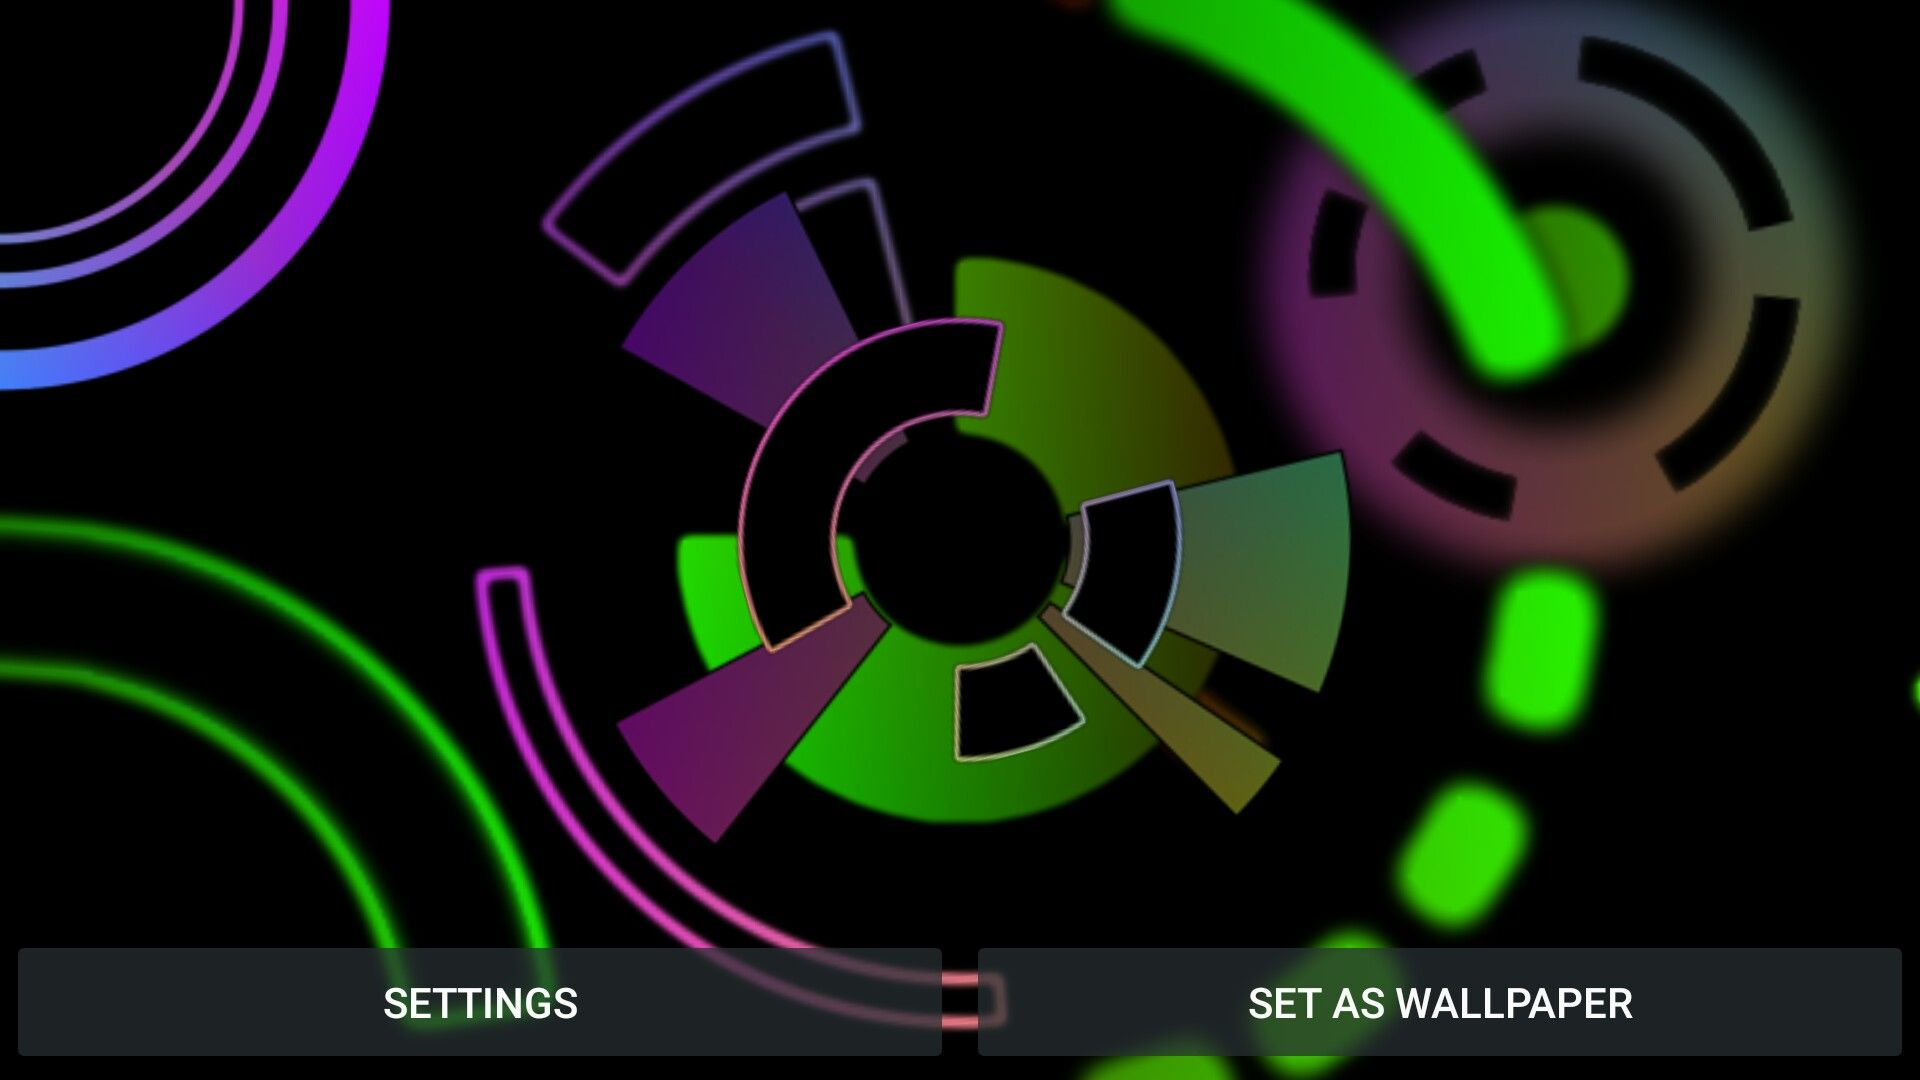 hypno ring theme indiedev gamedev androiddev livewallpaper android wallpaper